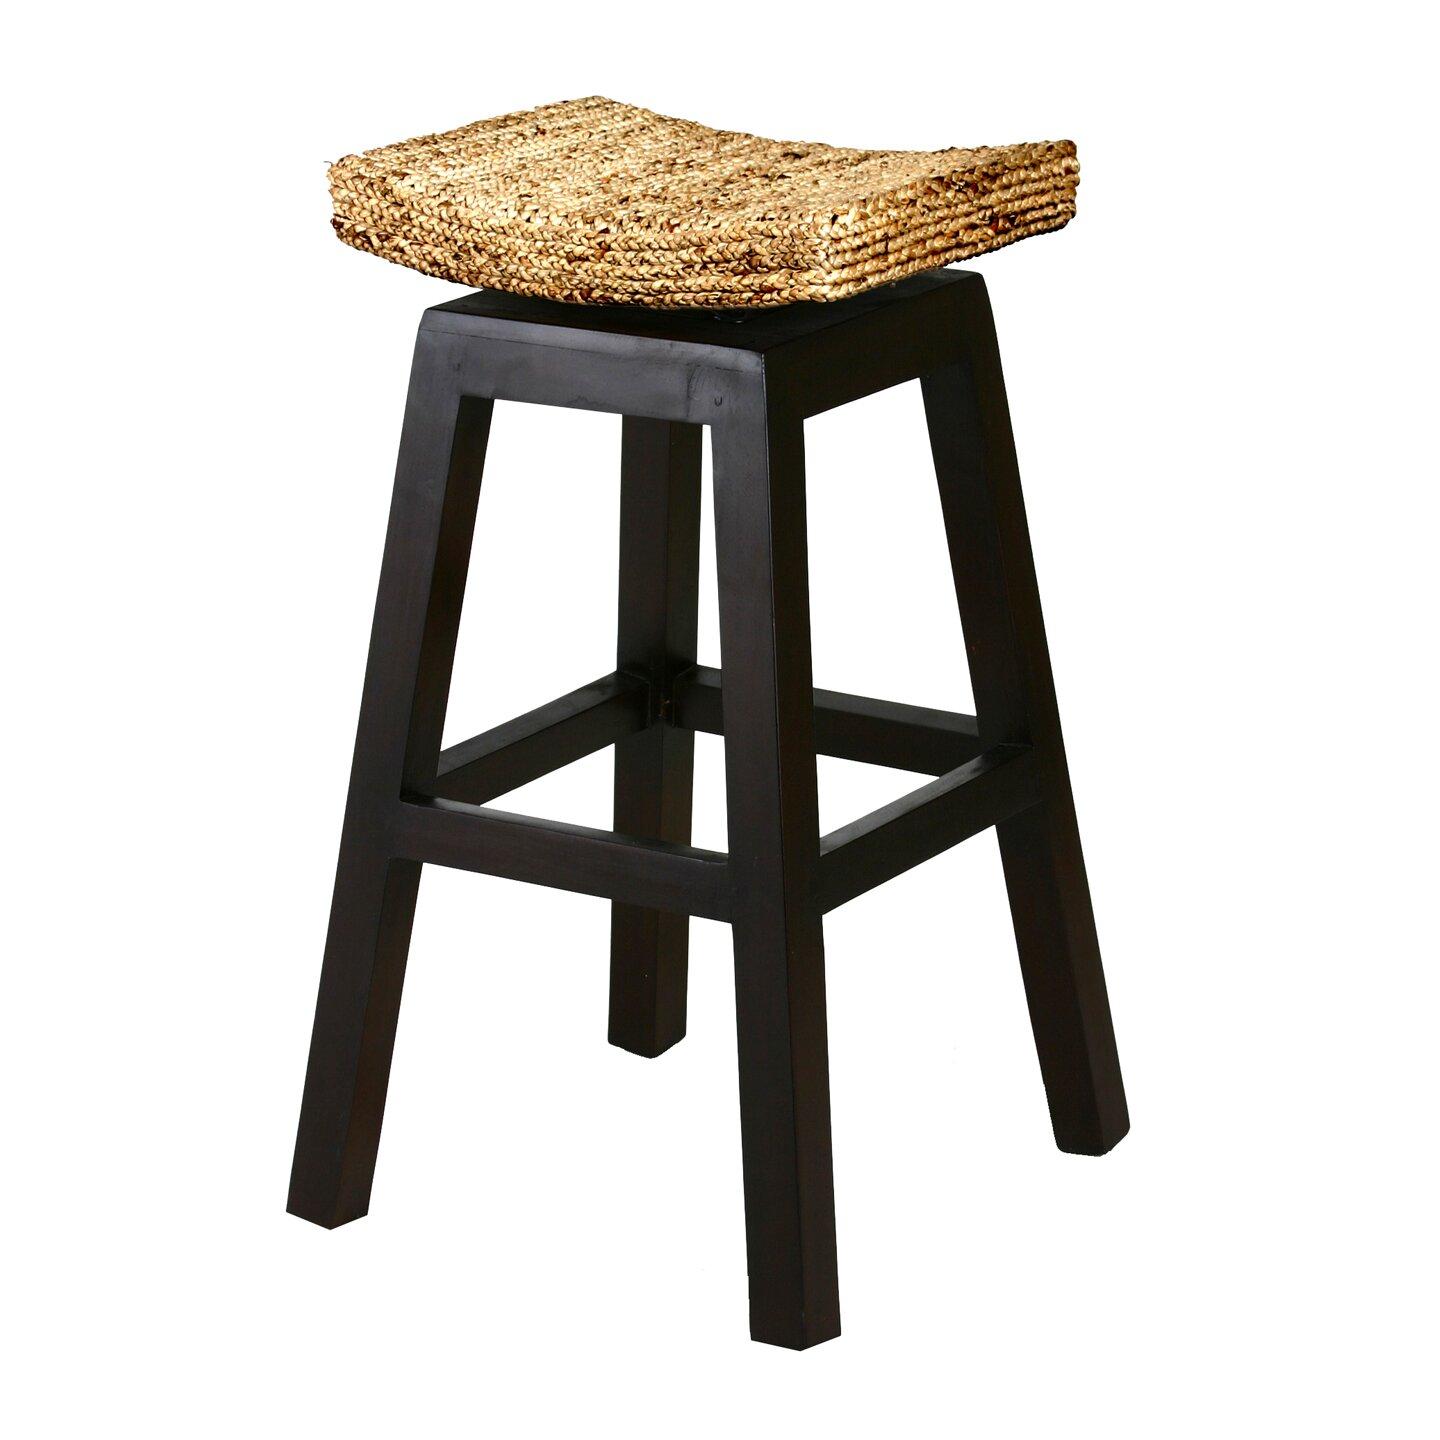 Chicteak 30 Quot Swivel Bar Stool Wayfair